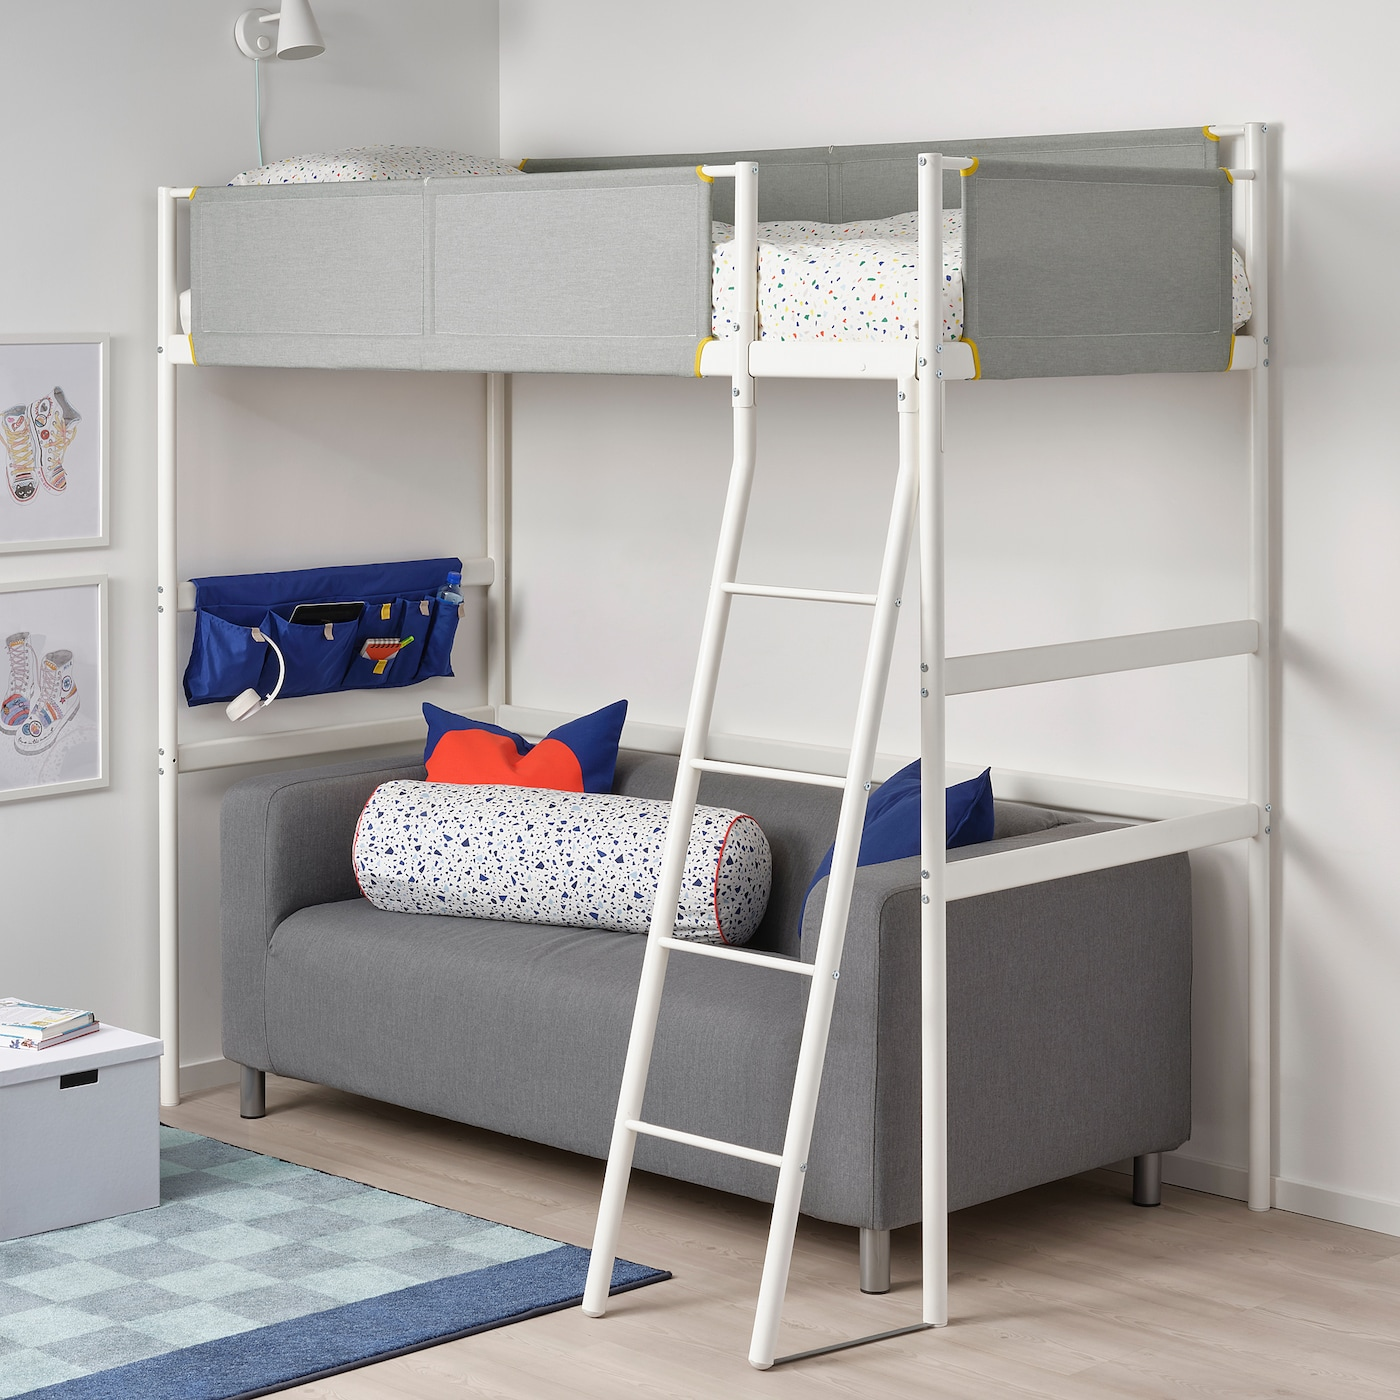 VITVAL loft bed frame white/light grey 135 cm 207 cm 97 cm 195 cm 150 cm 100 kg 200 cm 90 cm 13 cm